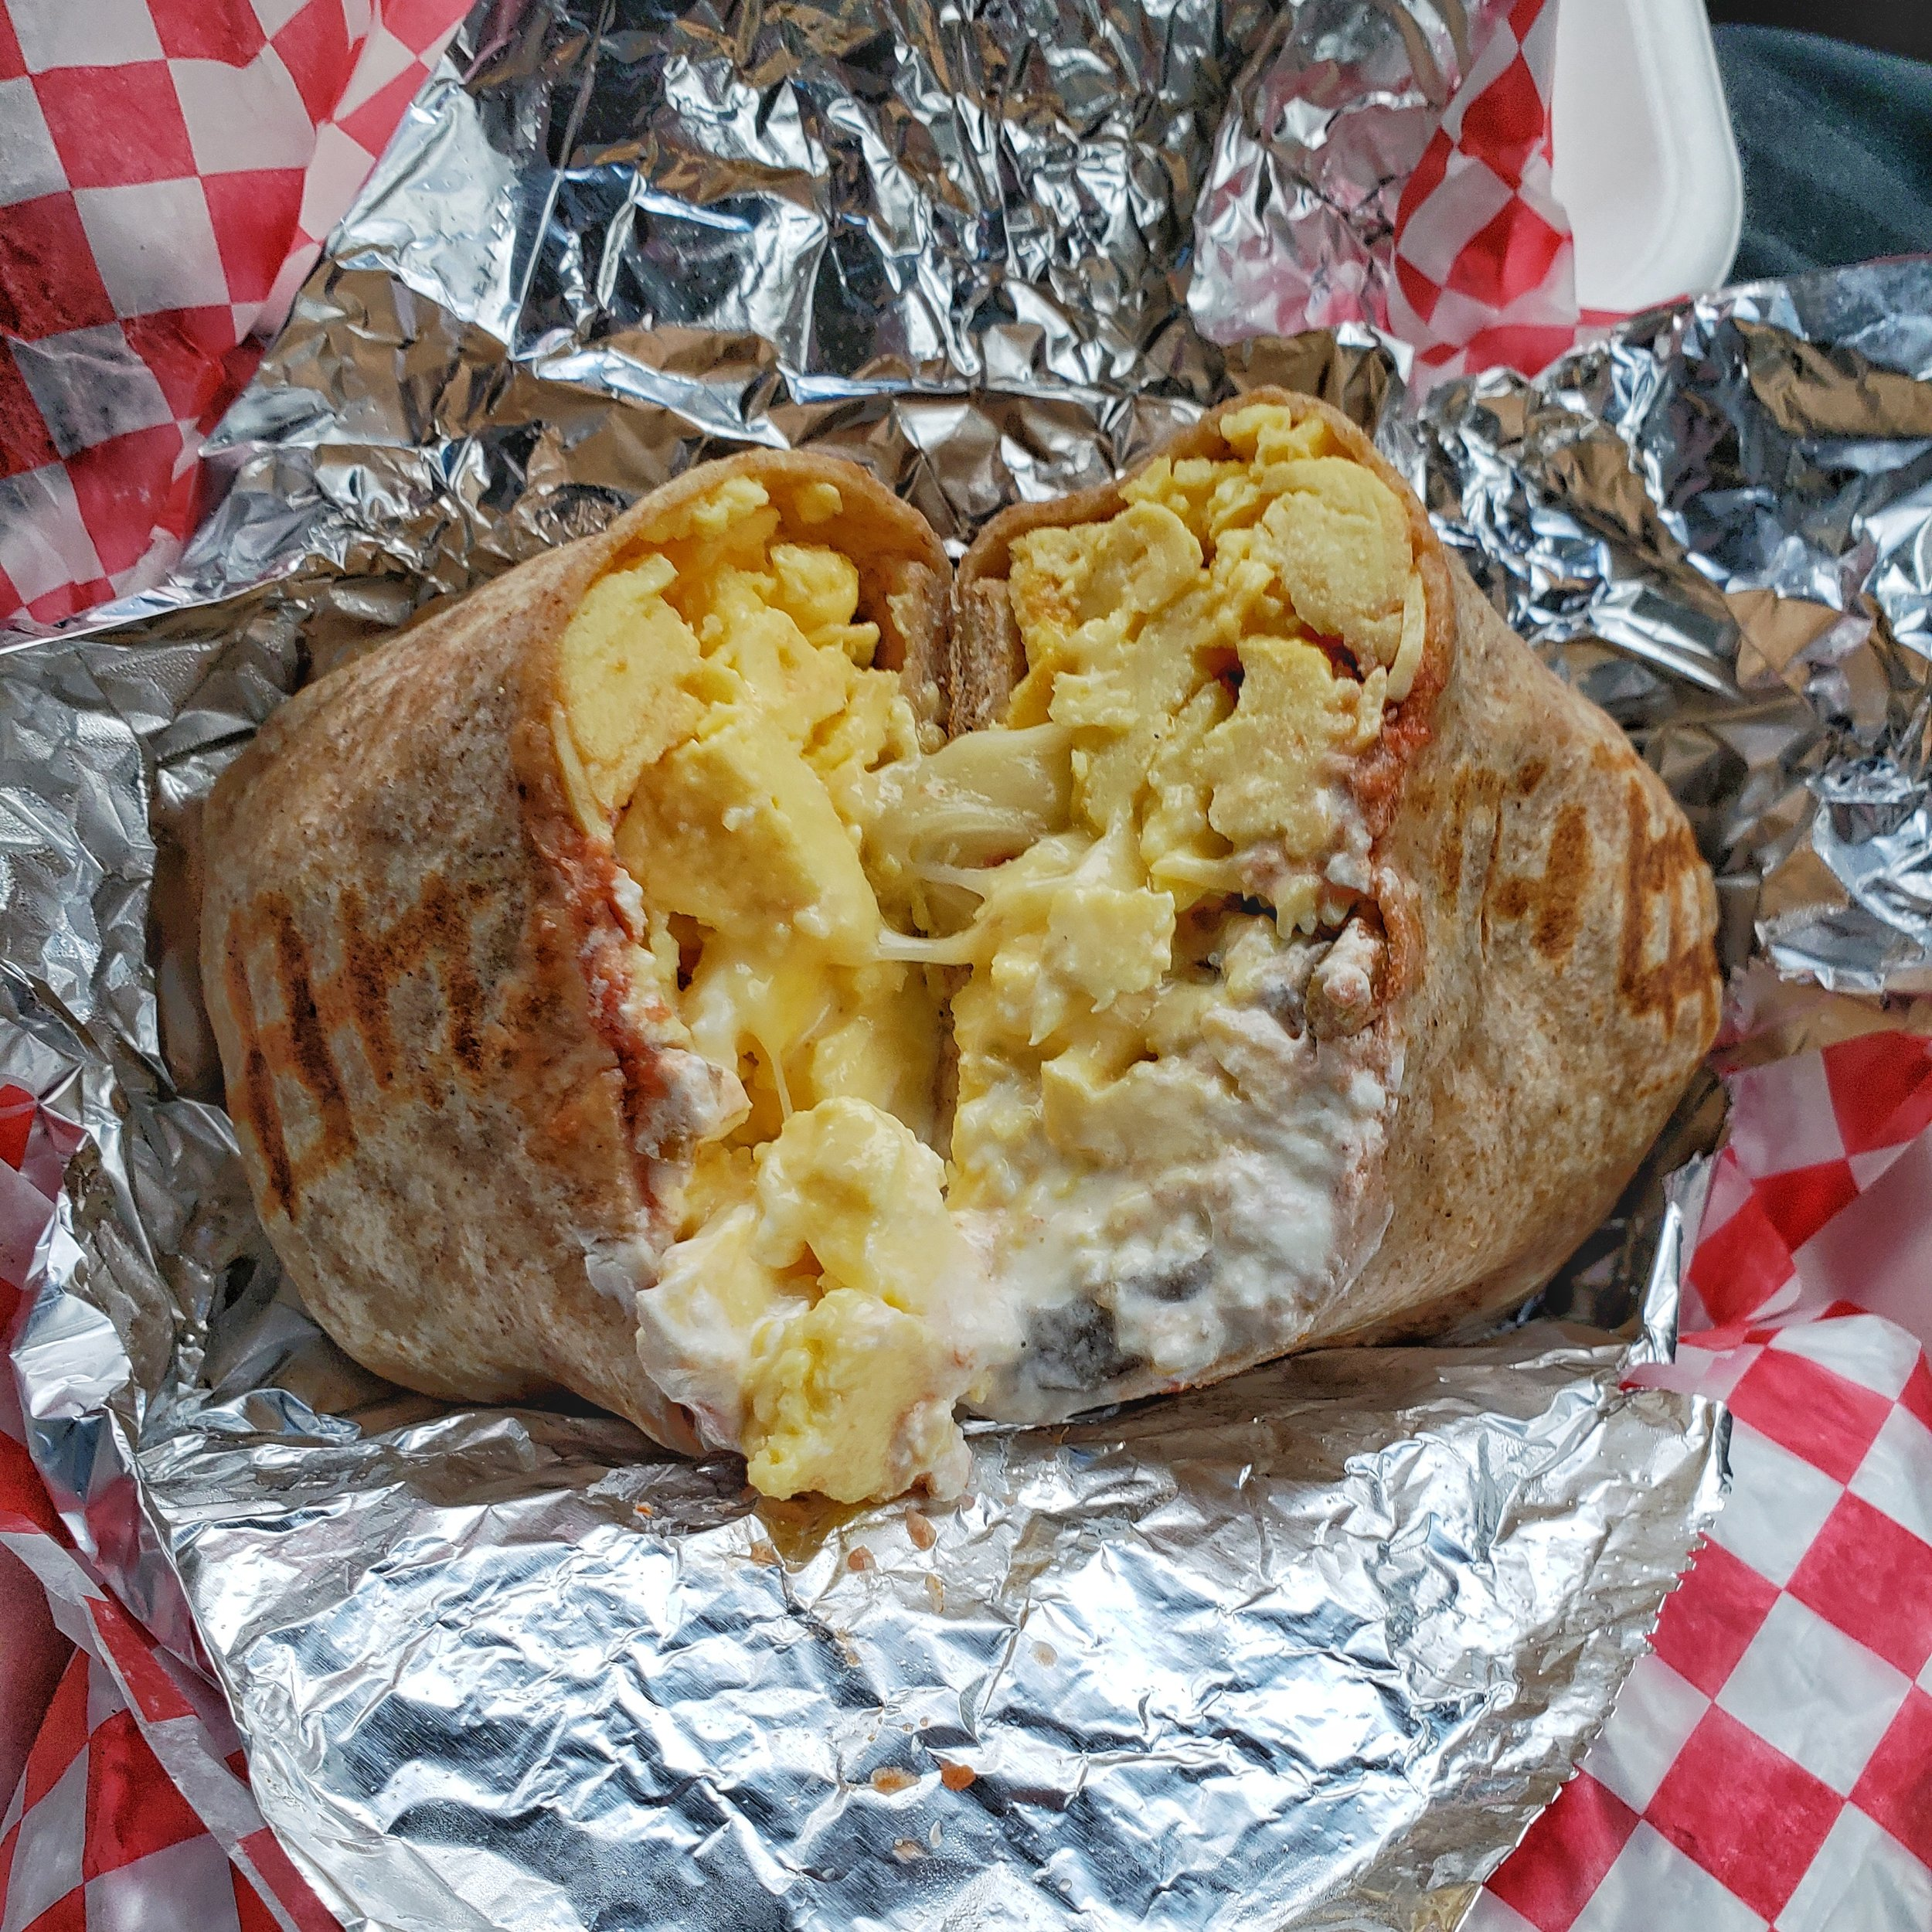 Nothing tastes as good as a giant breakfast burrito after you've been skiing all morning!